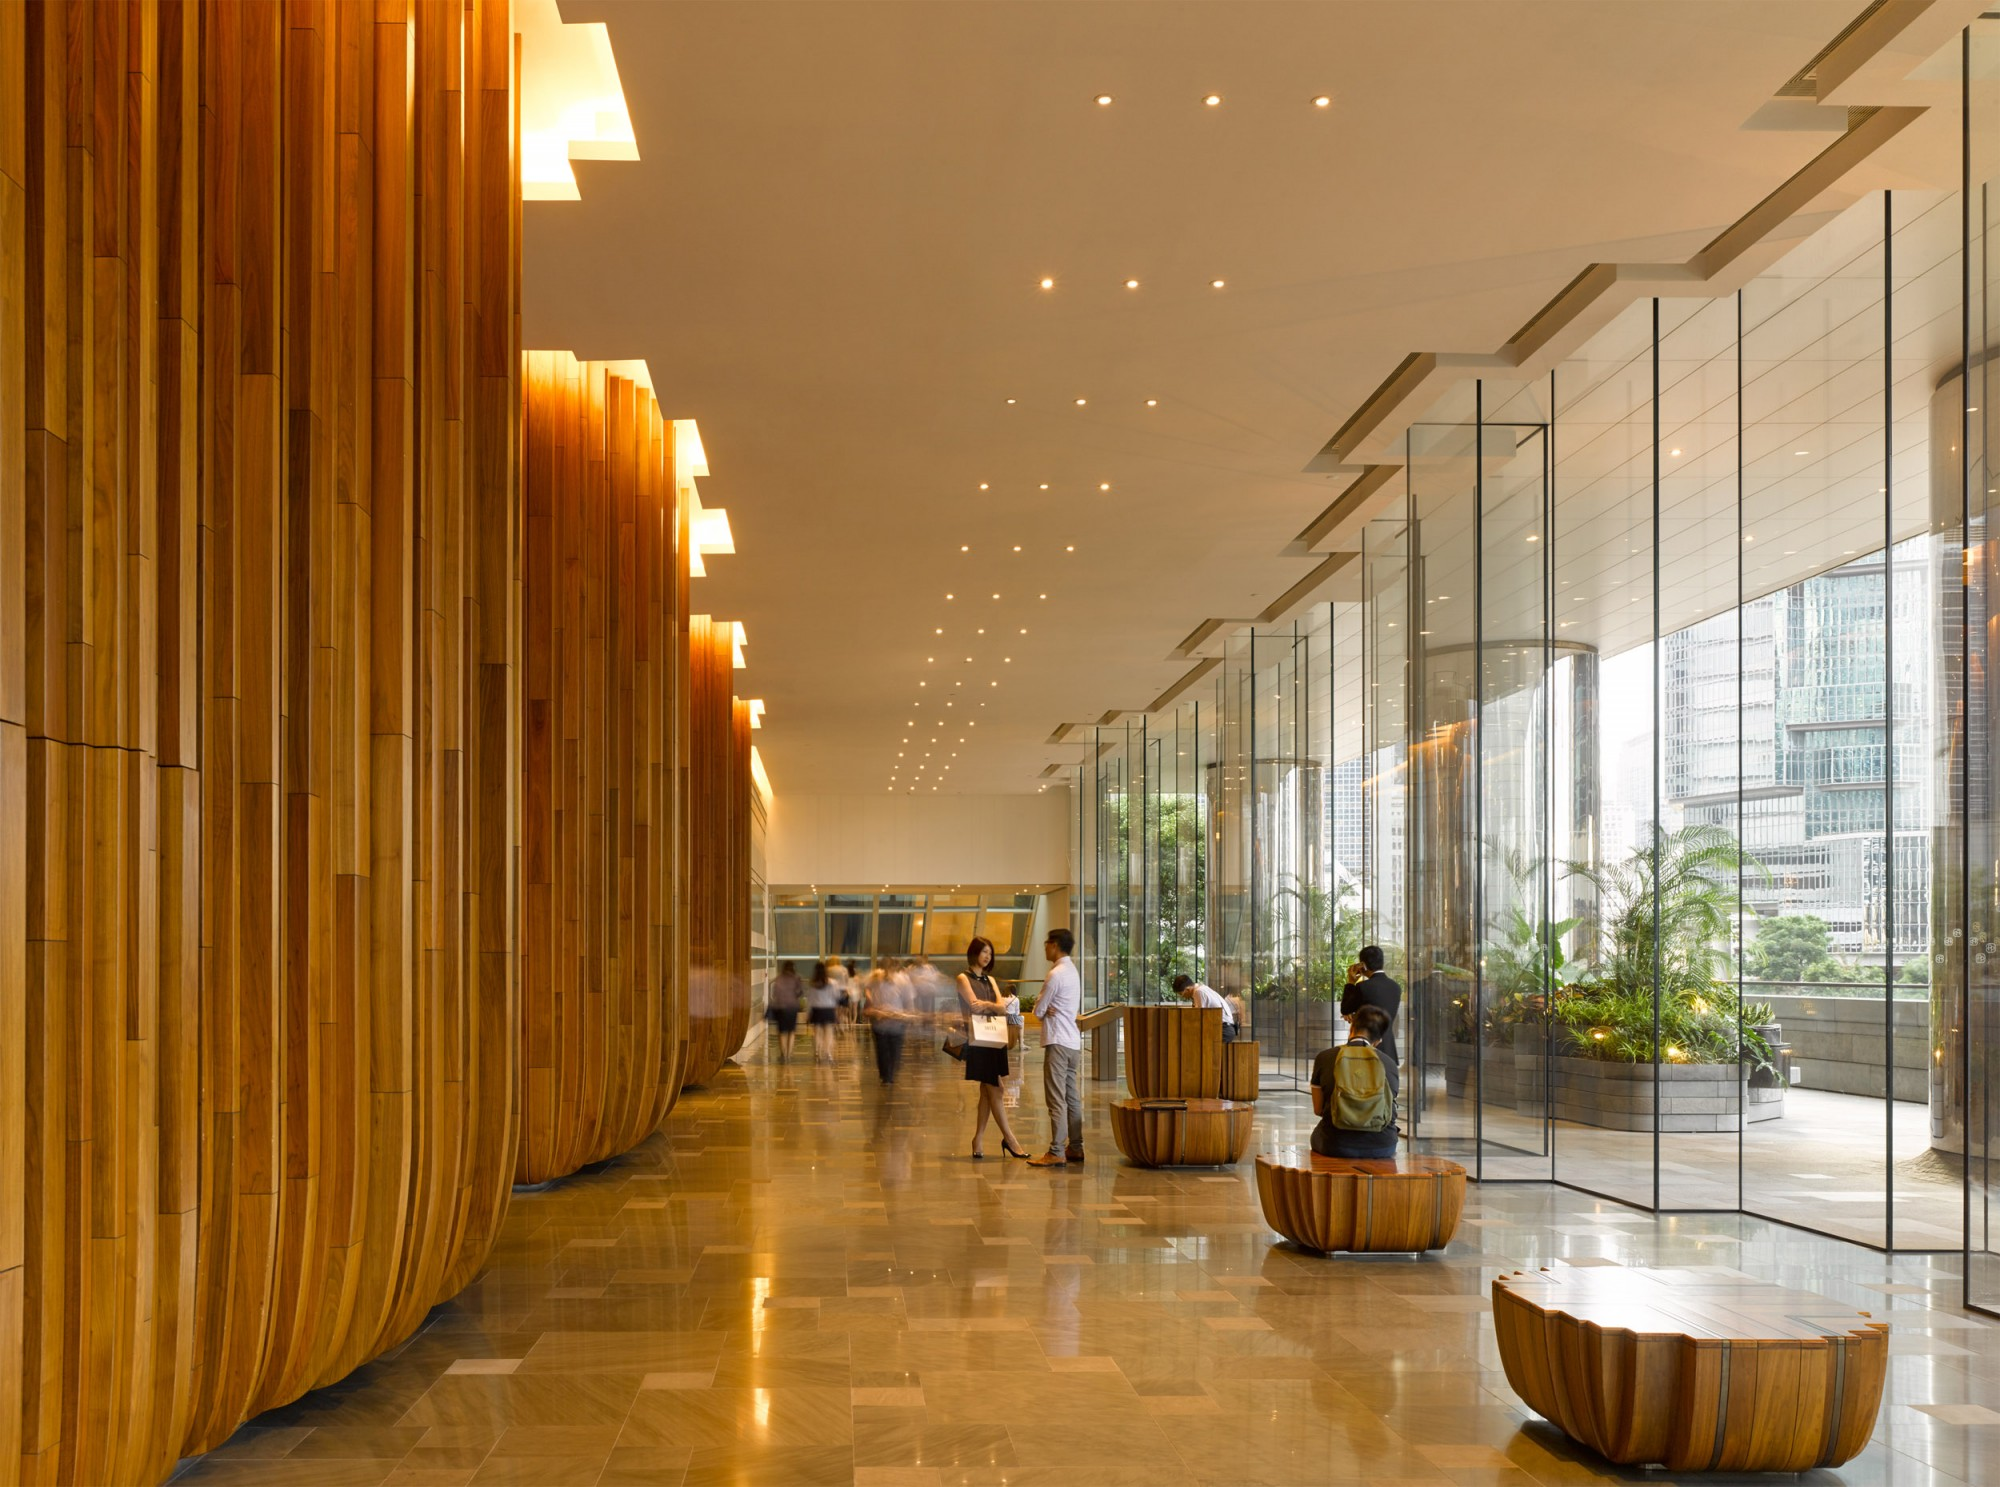 pacific place hong kong lobby heatherwick interior thomas office hotel queensway architecture studio theartistandhismodel entrance arch metalocus limit bring interiors